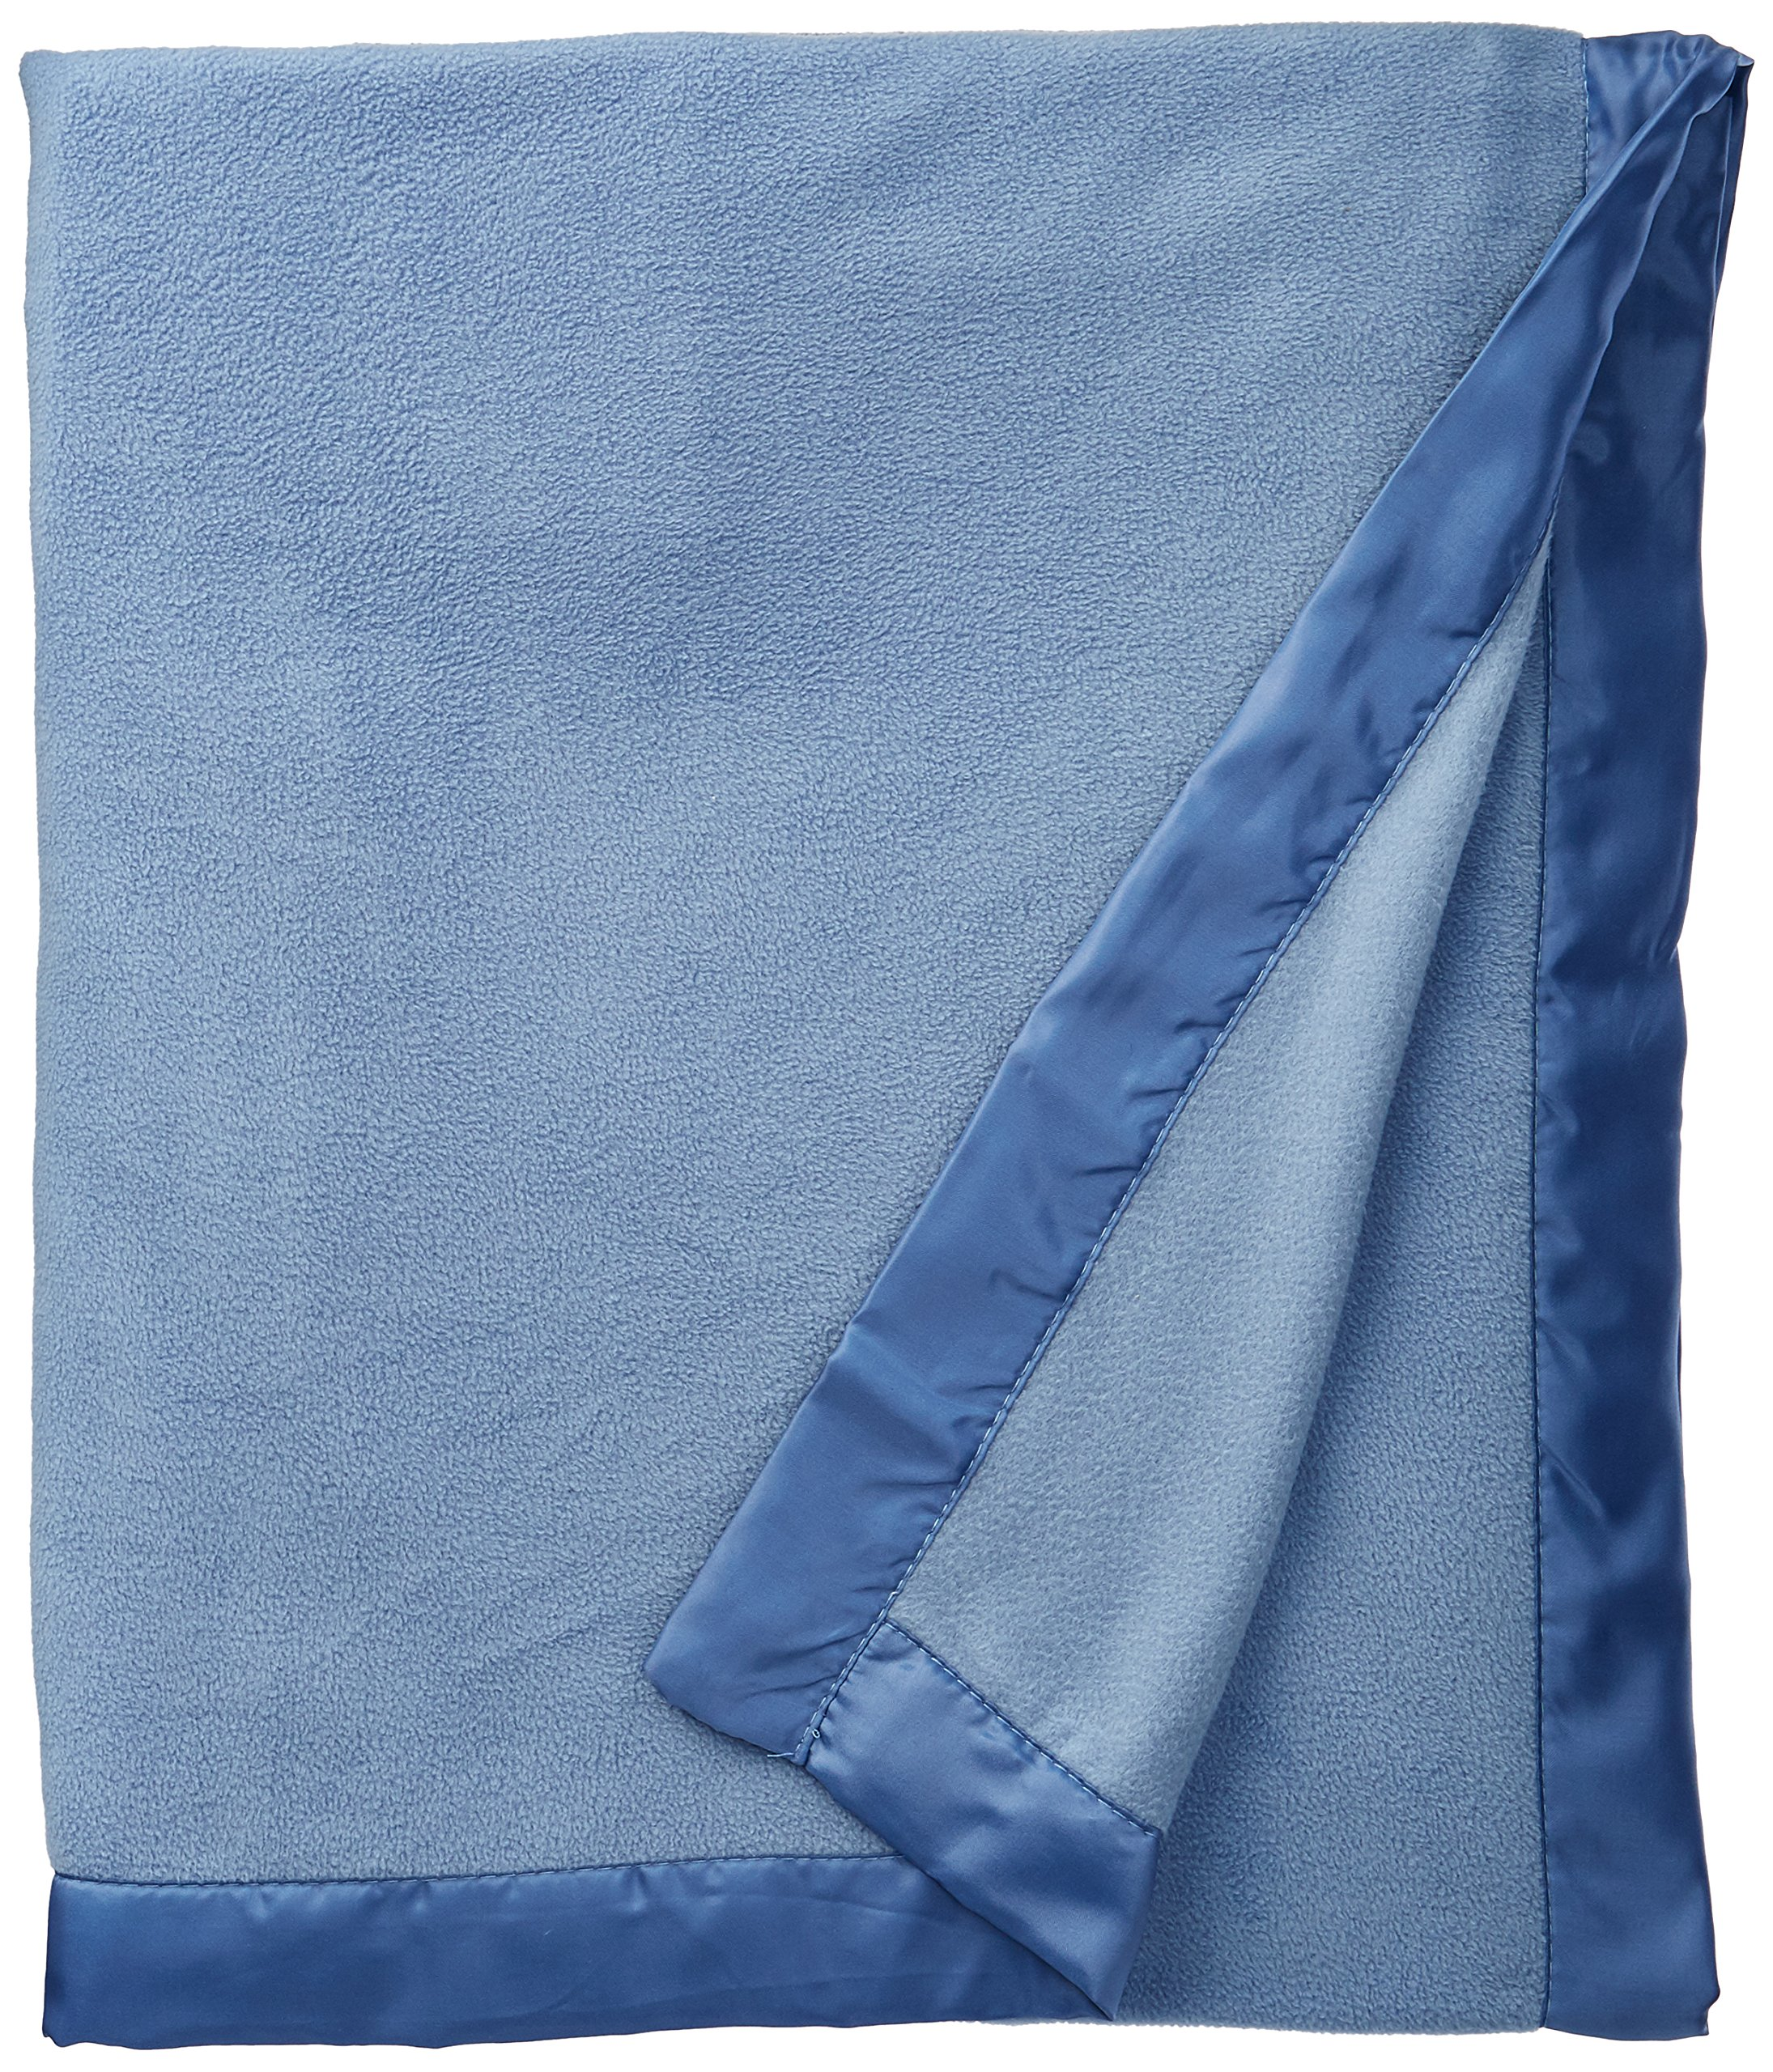 True North by Sleep Philosophy Micro Fleece Luxury Blanket Blue 6690 Twin Size Premium Soft Cozy Mircofleece For Bed, Coach or Sofa